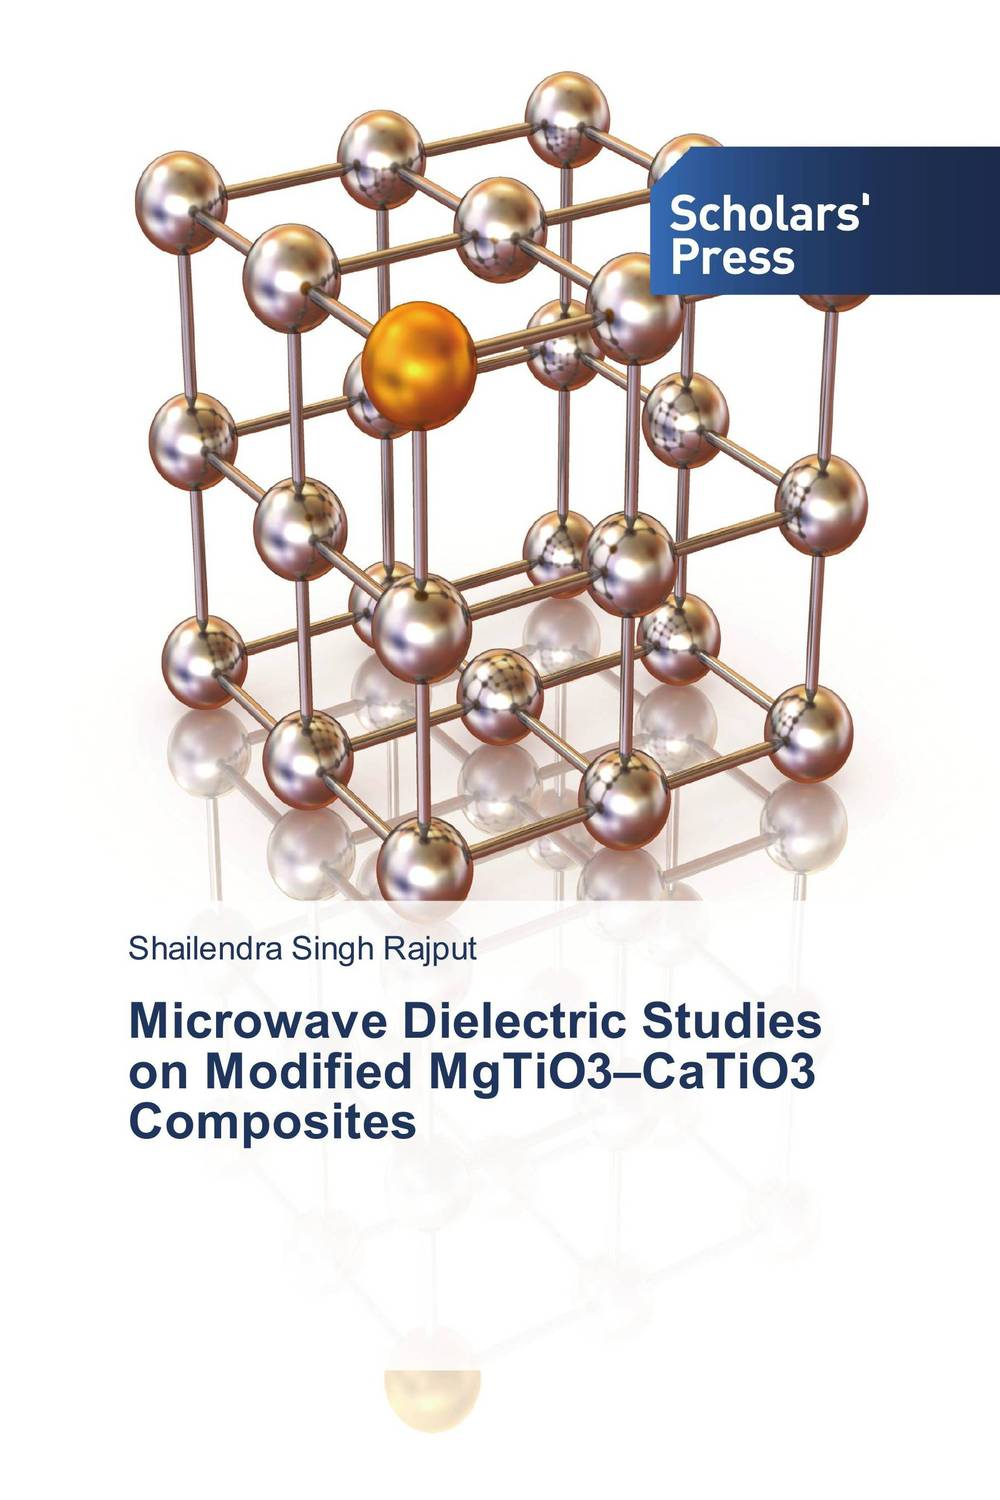 Microwave Dielectric Studies on Modified MgTiO3–CaTiO3 Composites modified pnas synthesis and interaction studies with dna